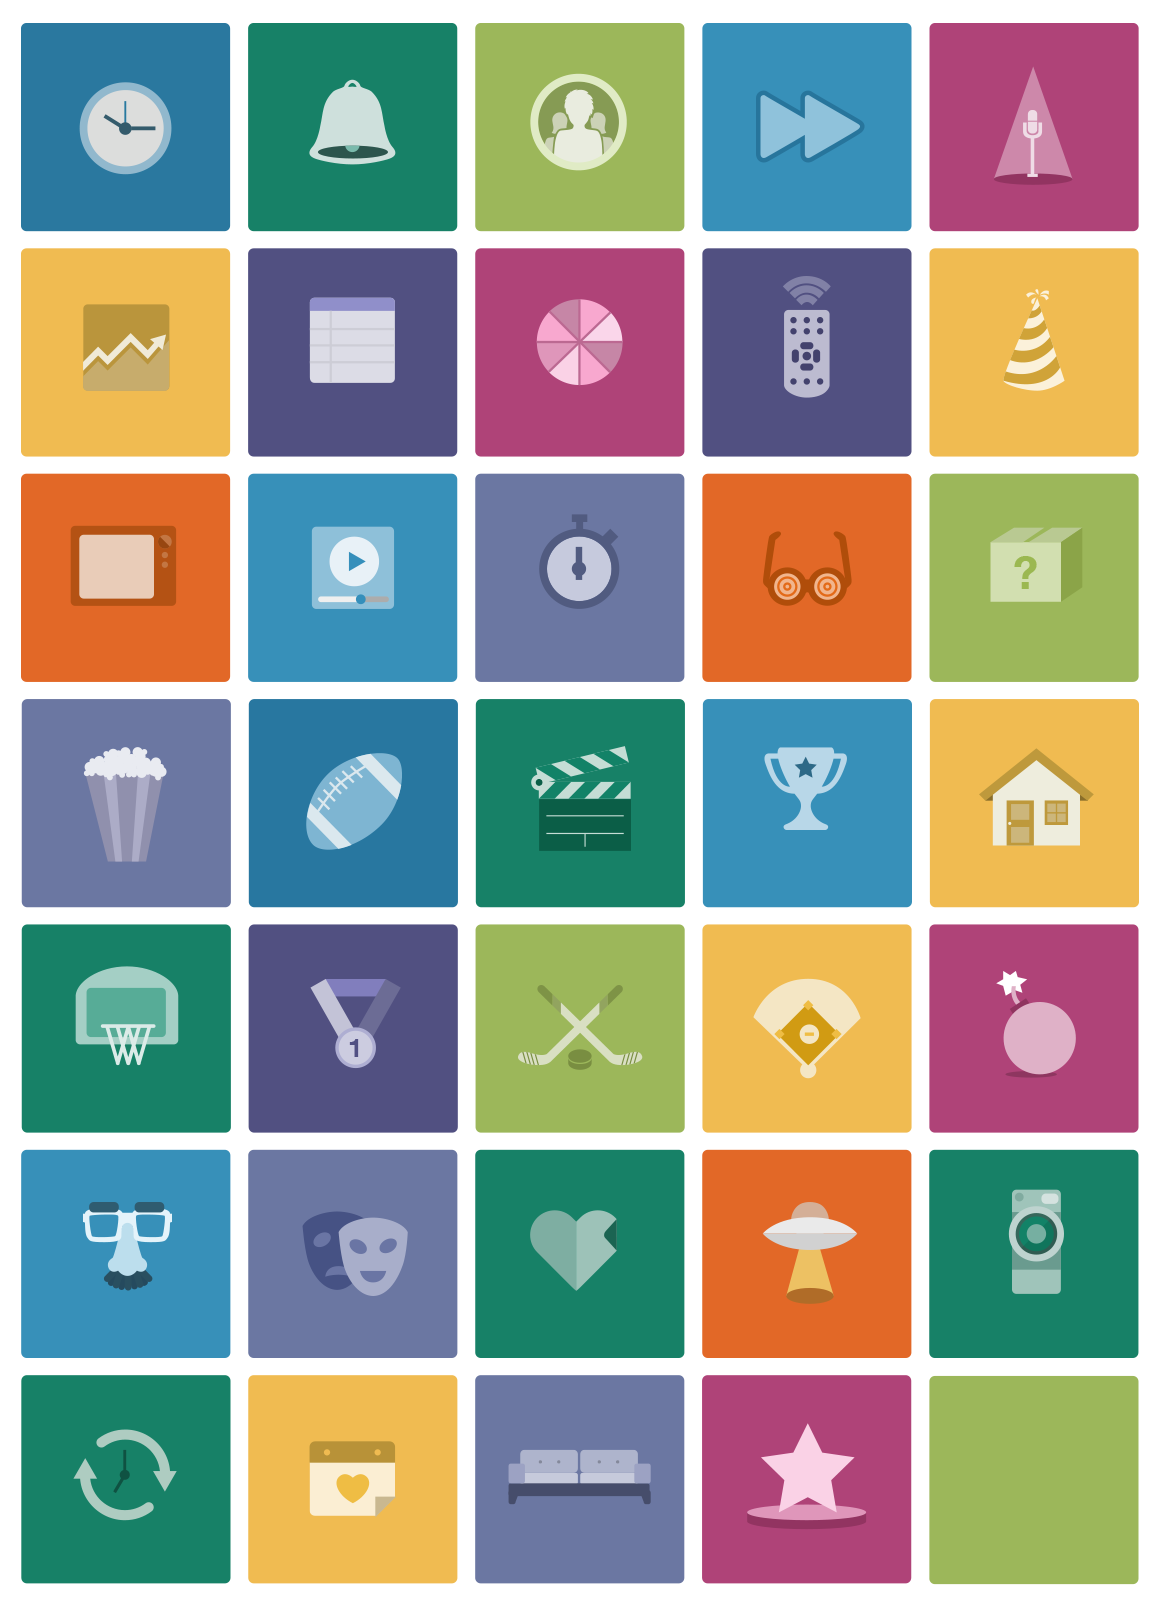 iPhone App Icons Design